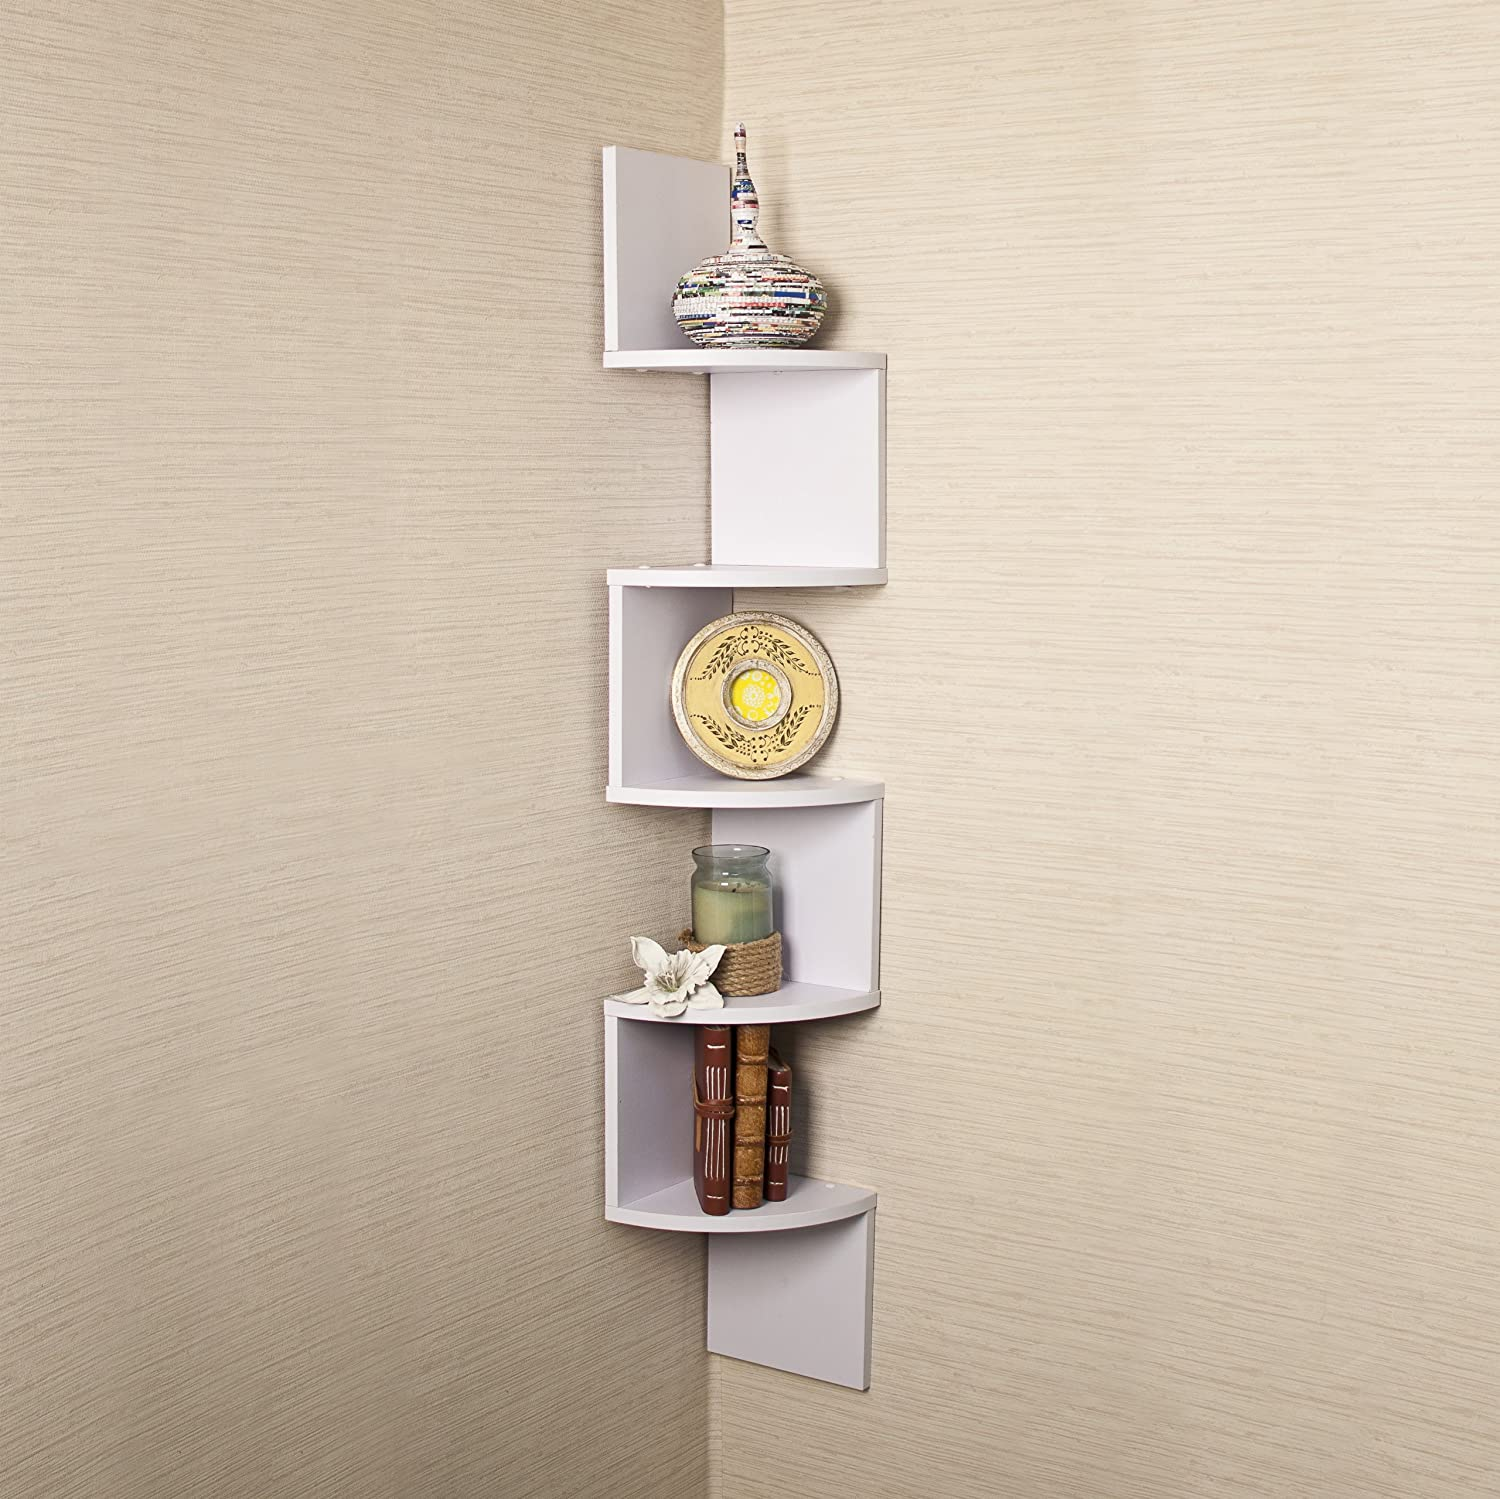 Amazon.com: Floating Shelves: Home & Kitchen